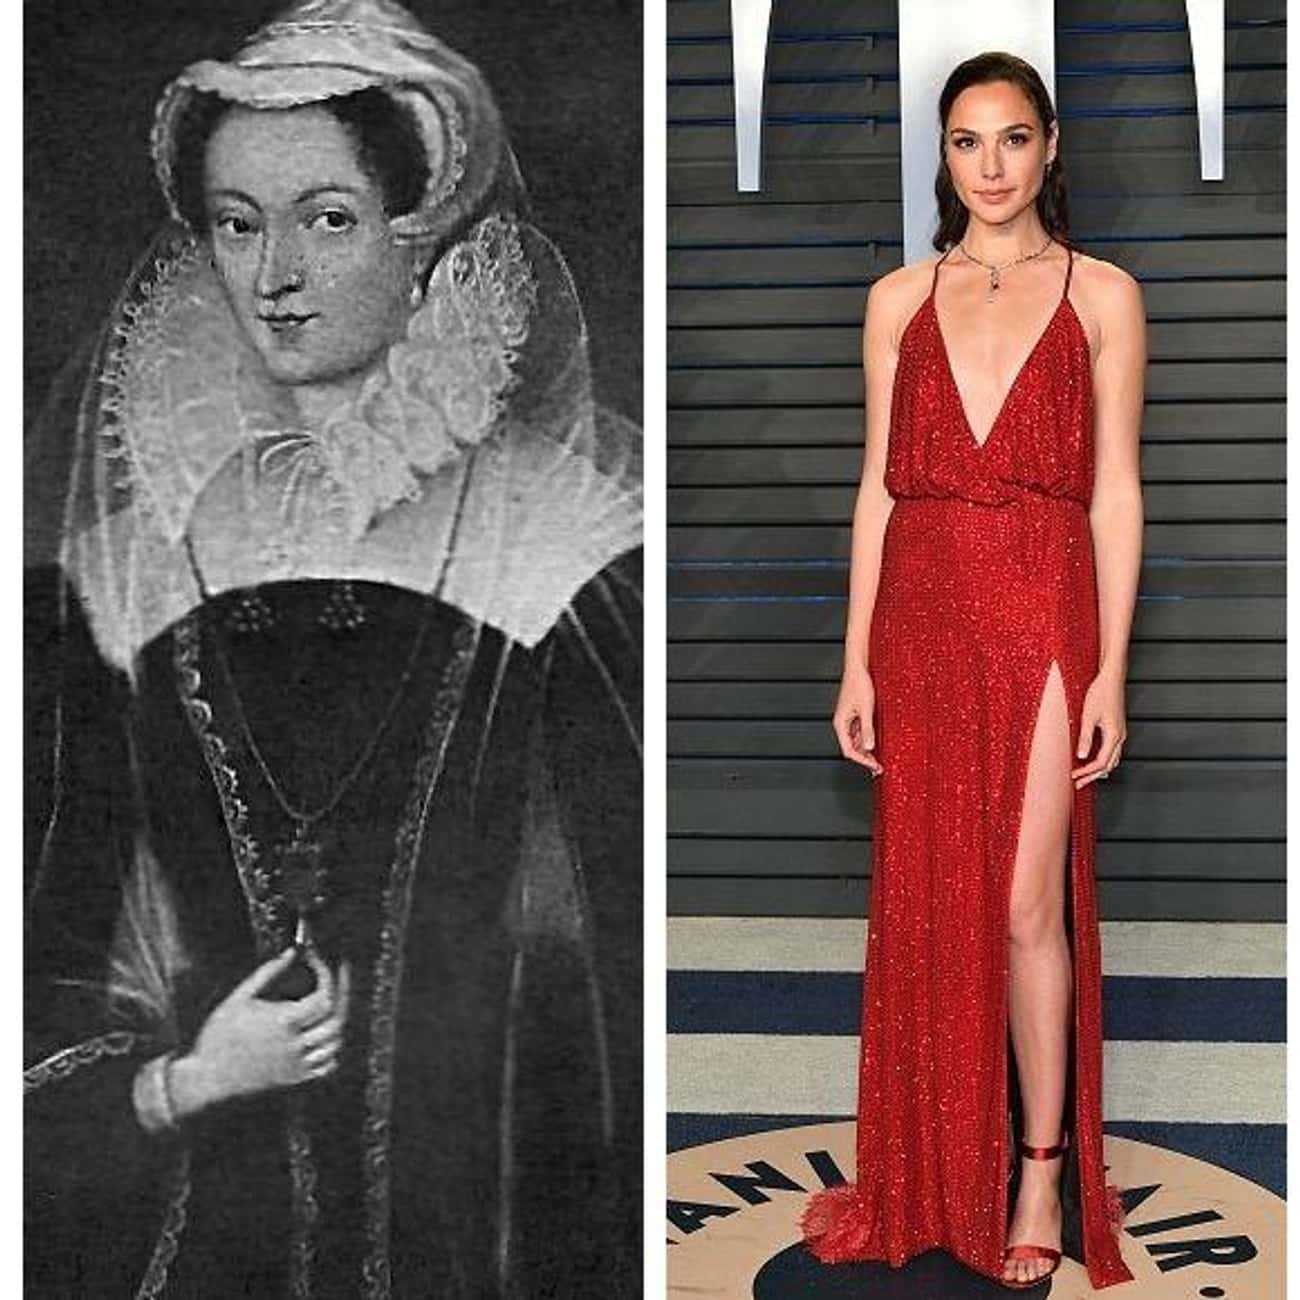 Mary Queen Of Scots, 5'10& is listed (or ranked) 2 on the list Here Are The Modern Height Counterparts To Some Of History's Most Important Figures